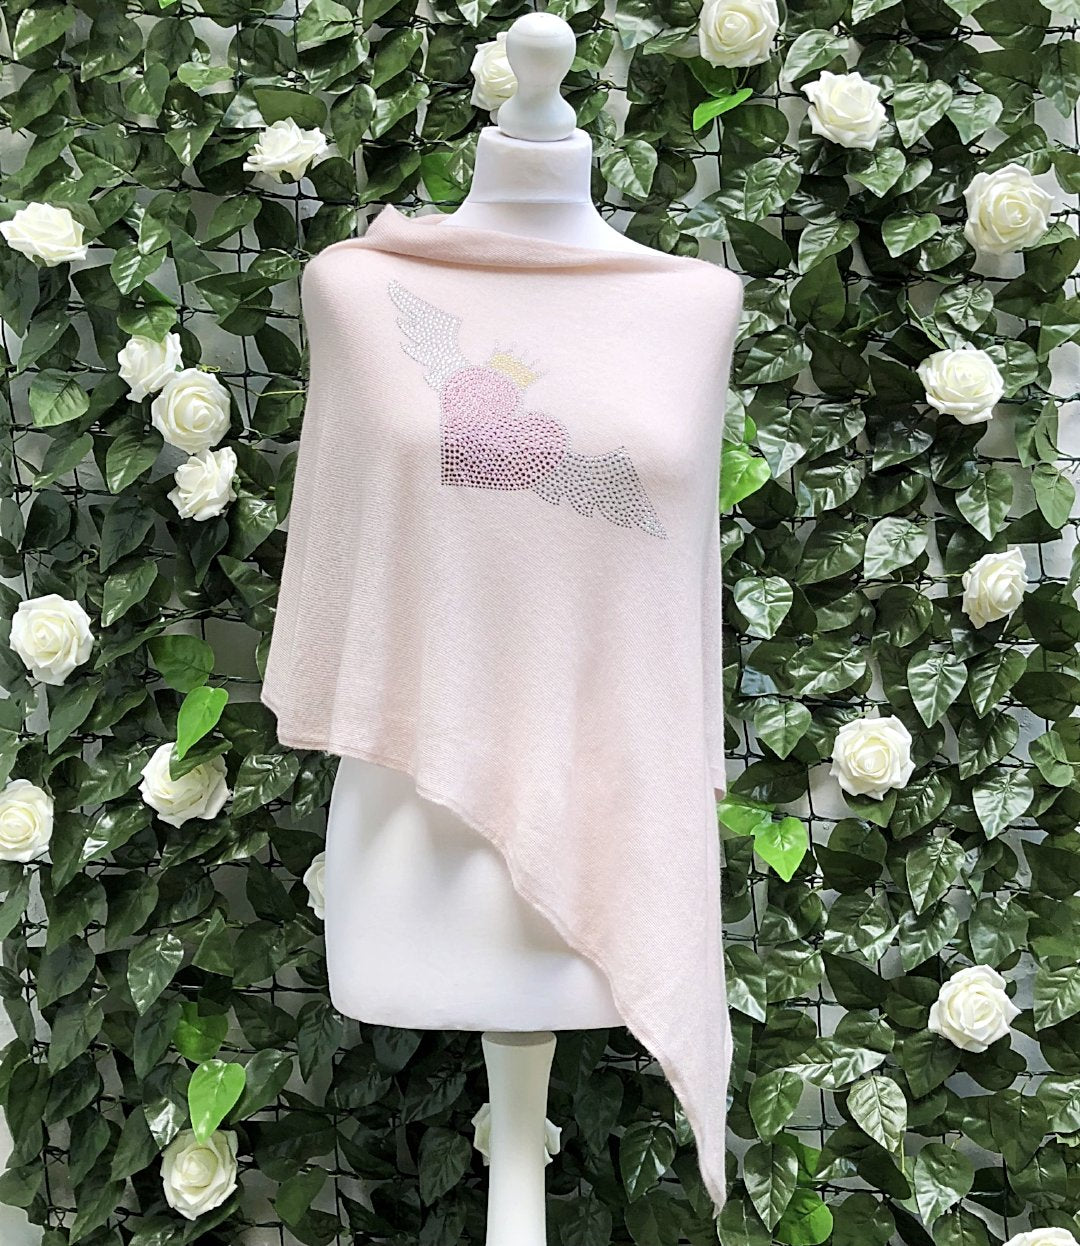 Light asymmetric summer poncho FLYING HEART (blush)